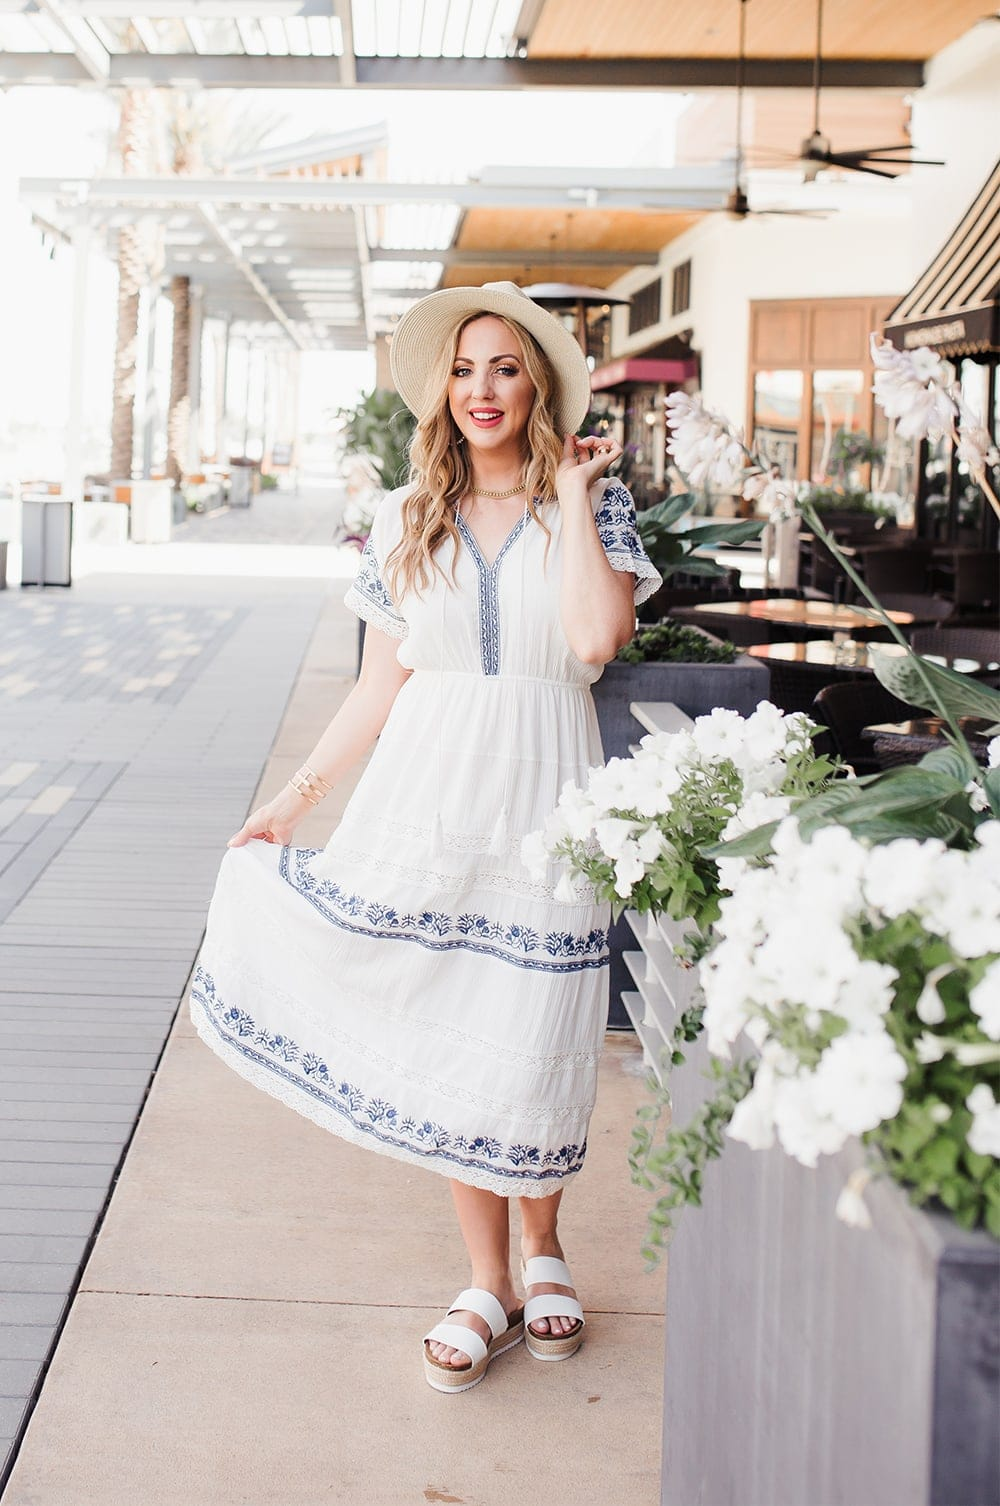 Houston lifestyle blogger Meg O. on the Go shares 3 perfect outfits for summer - this embroidered dress gives all the vacation vibes